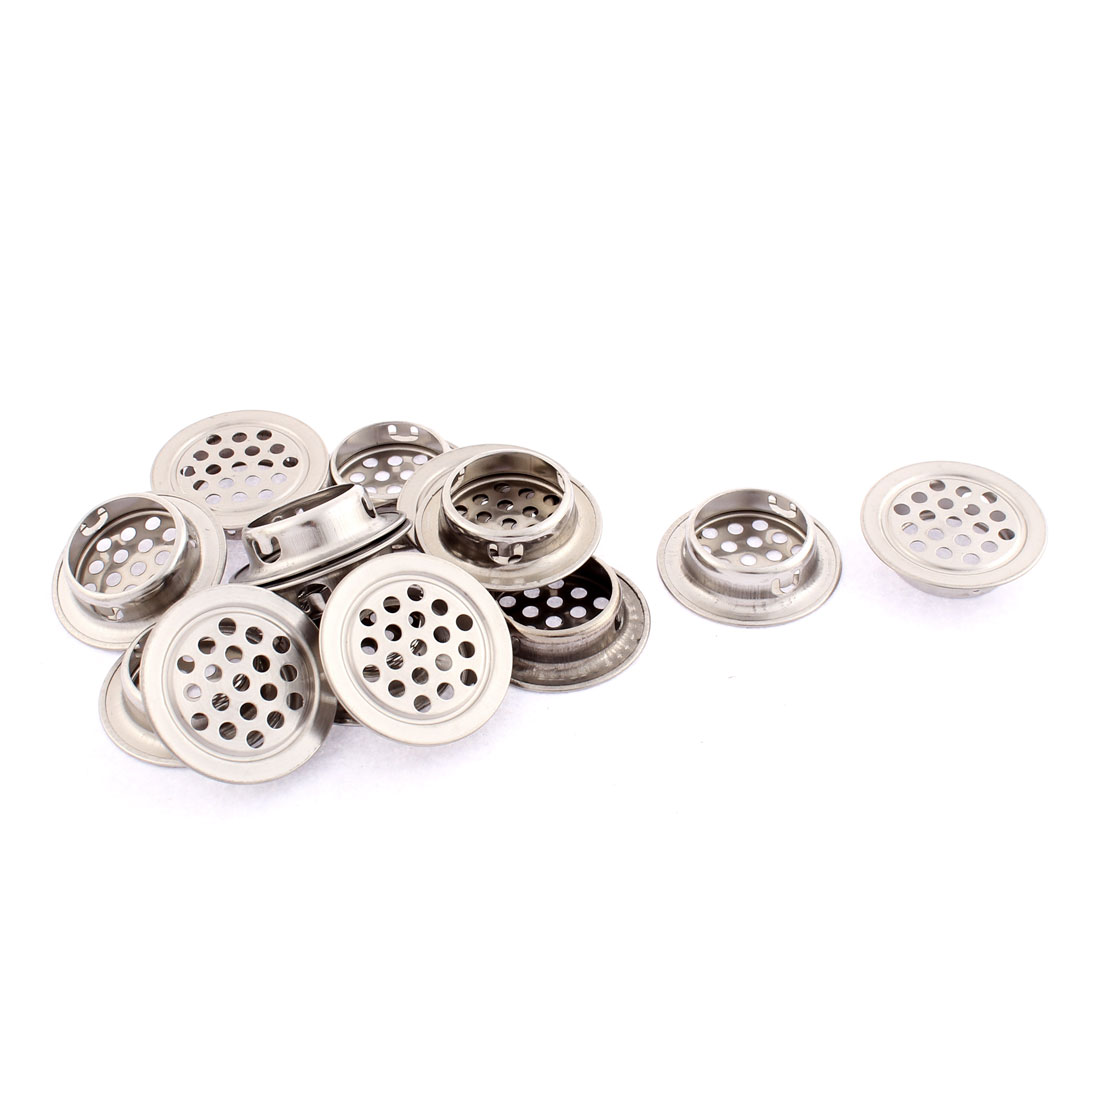 Cupboard Cabinet Perforated Mesh Air Vents Louvers 35mm Diameter 14 Pcs